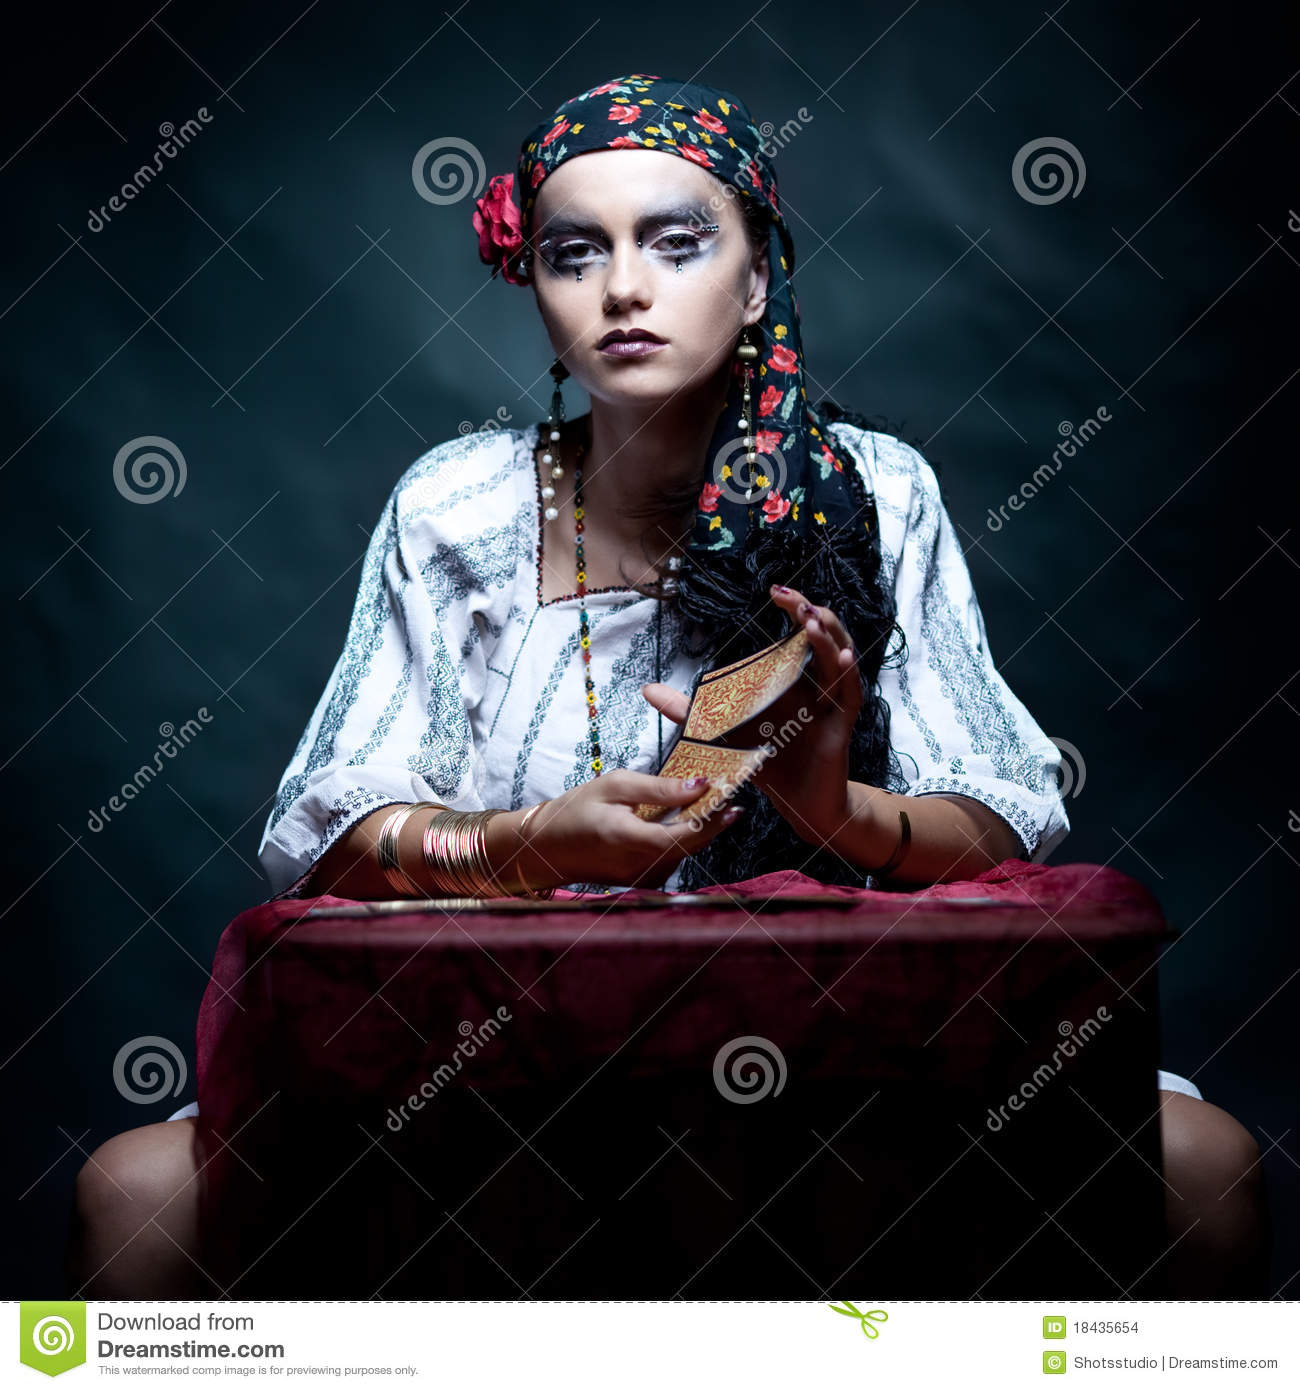 Gypsy fortune teller mixing the tarot cards.